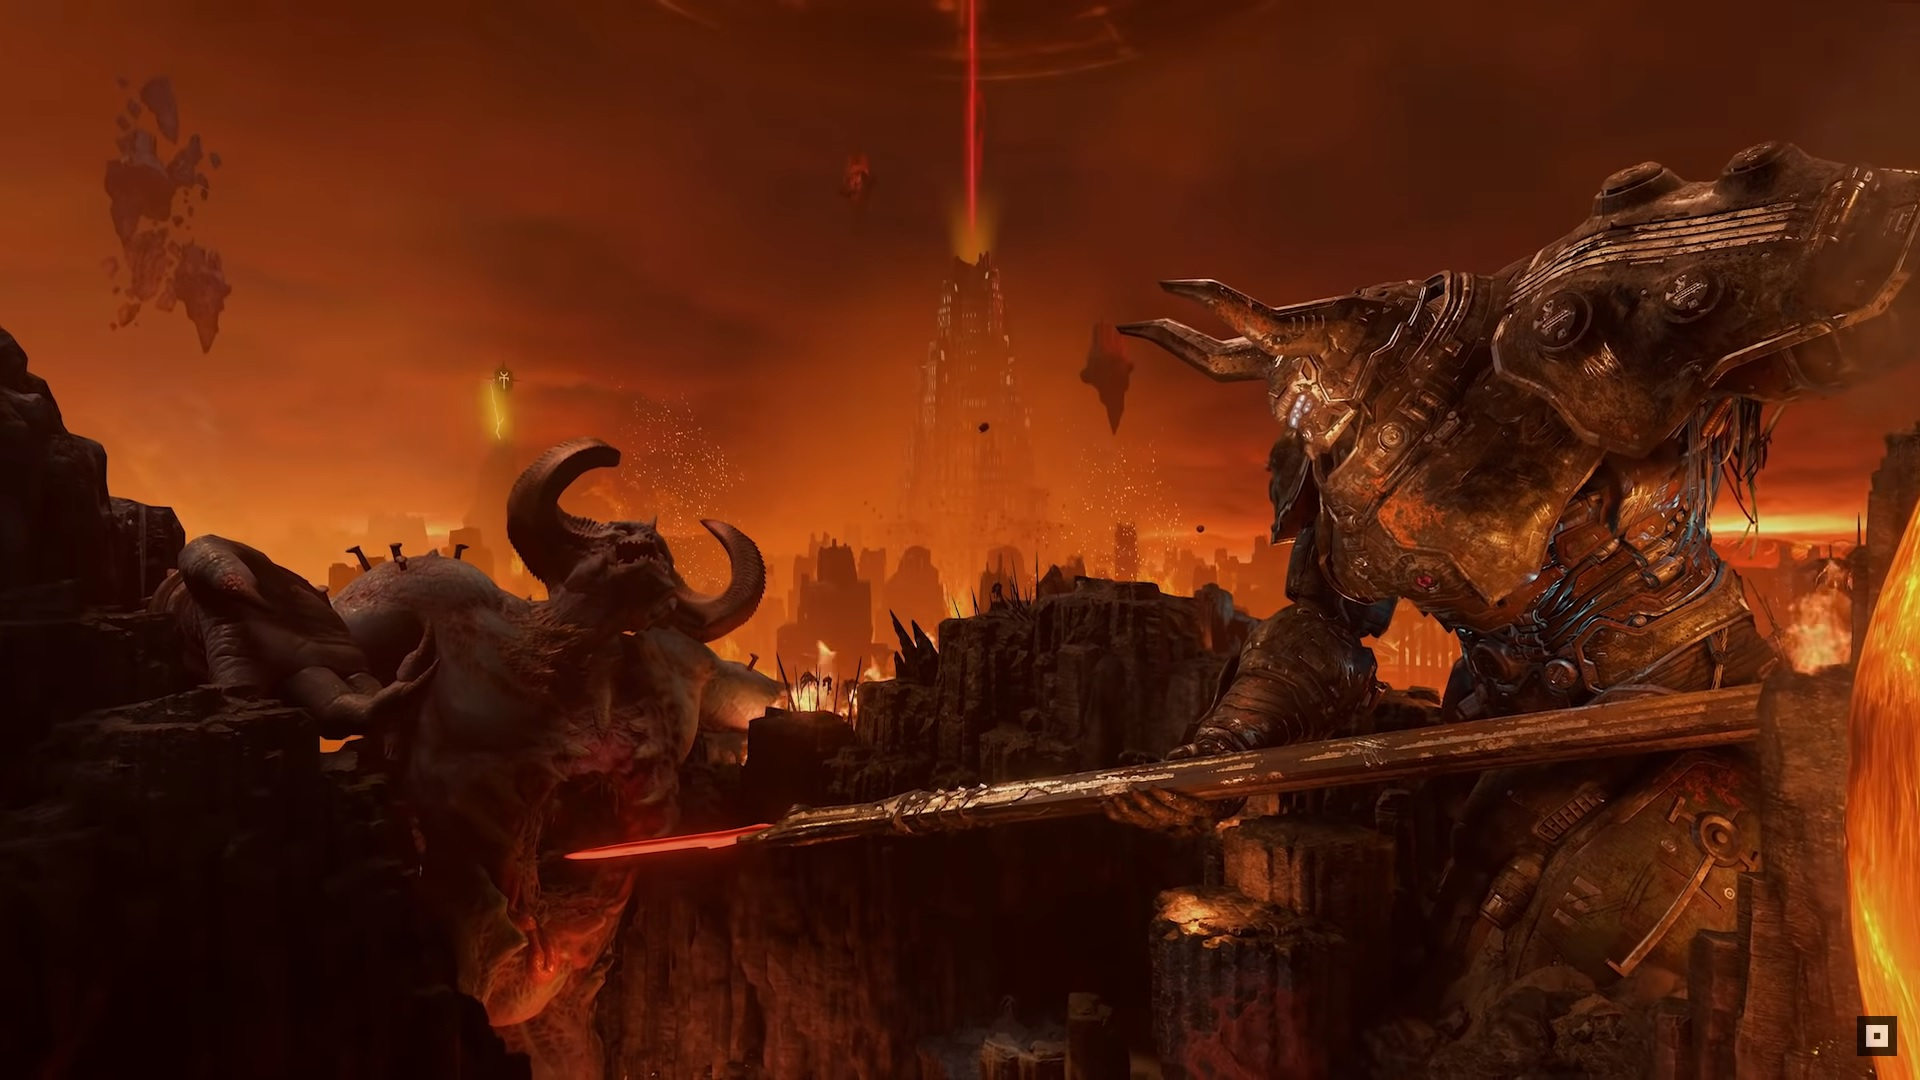 Things Seem Bad In The Newest Doom Eternal Trailer